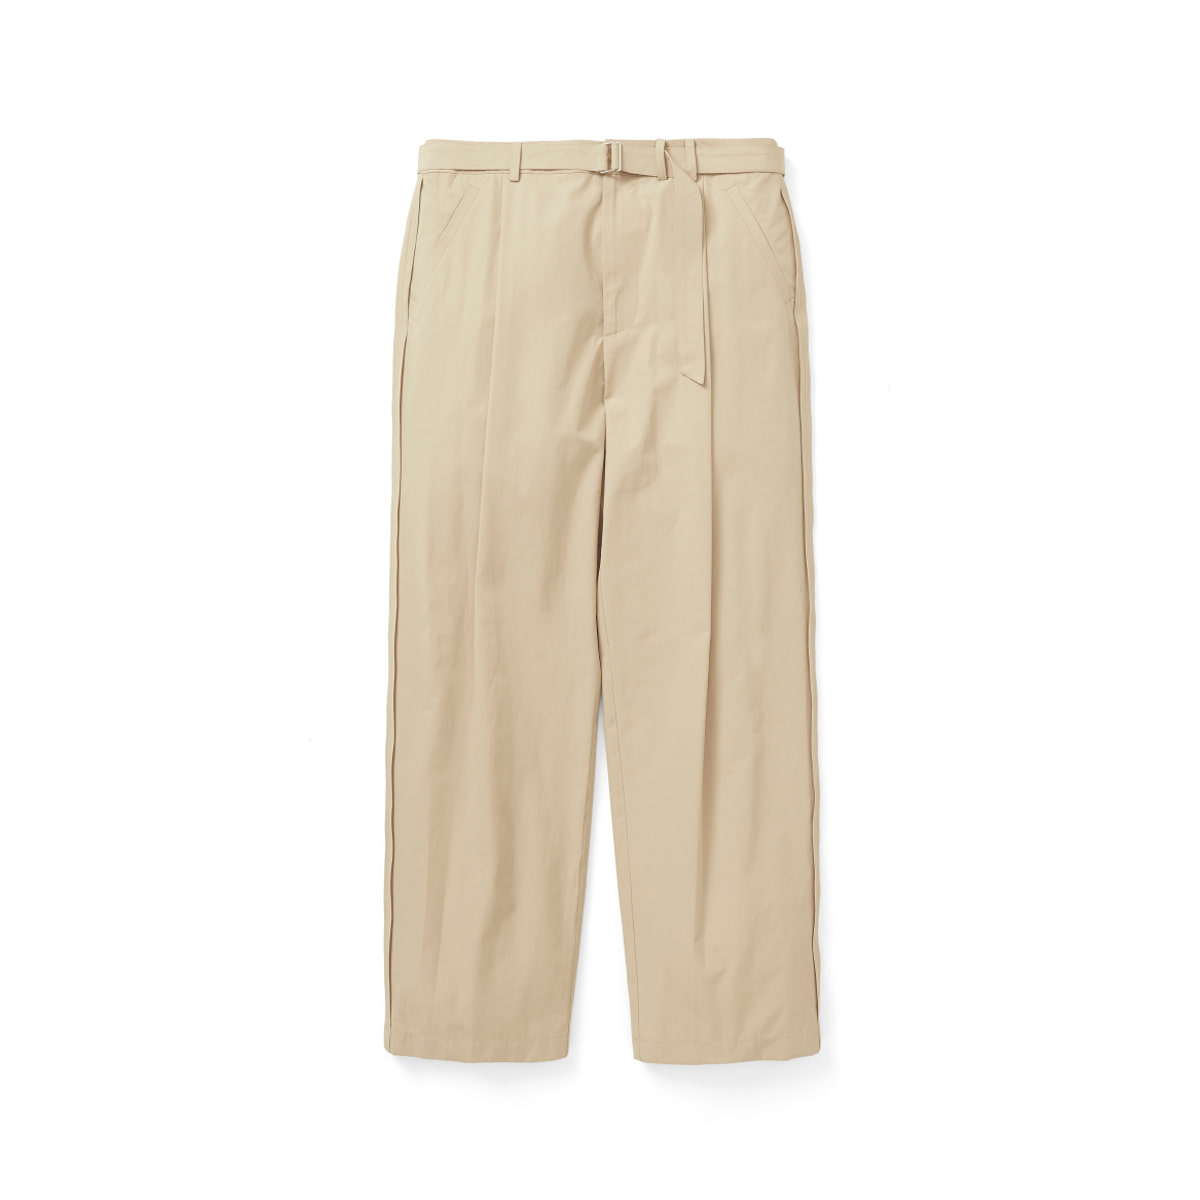 [YOUTH] REVERSE BELTED PANTS 'BEIGE'